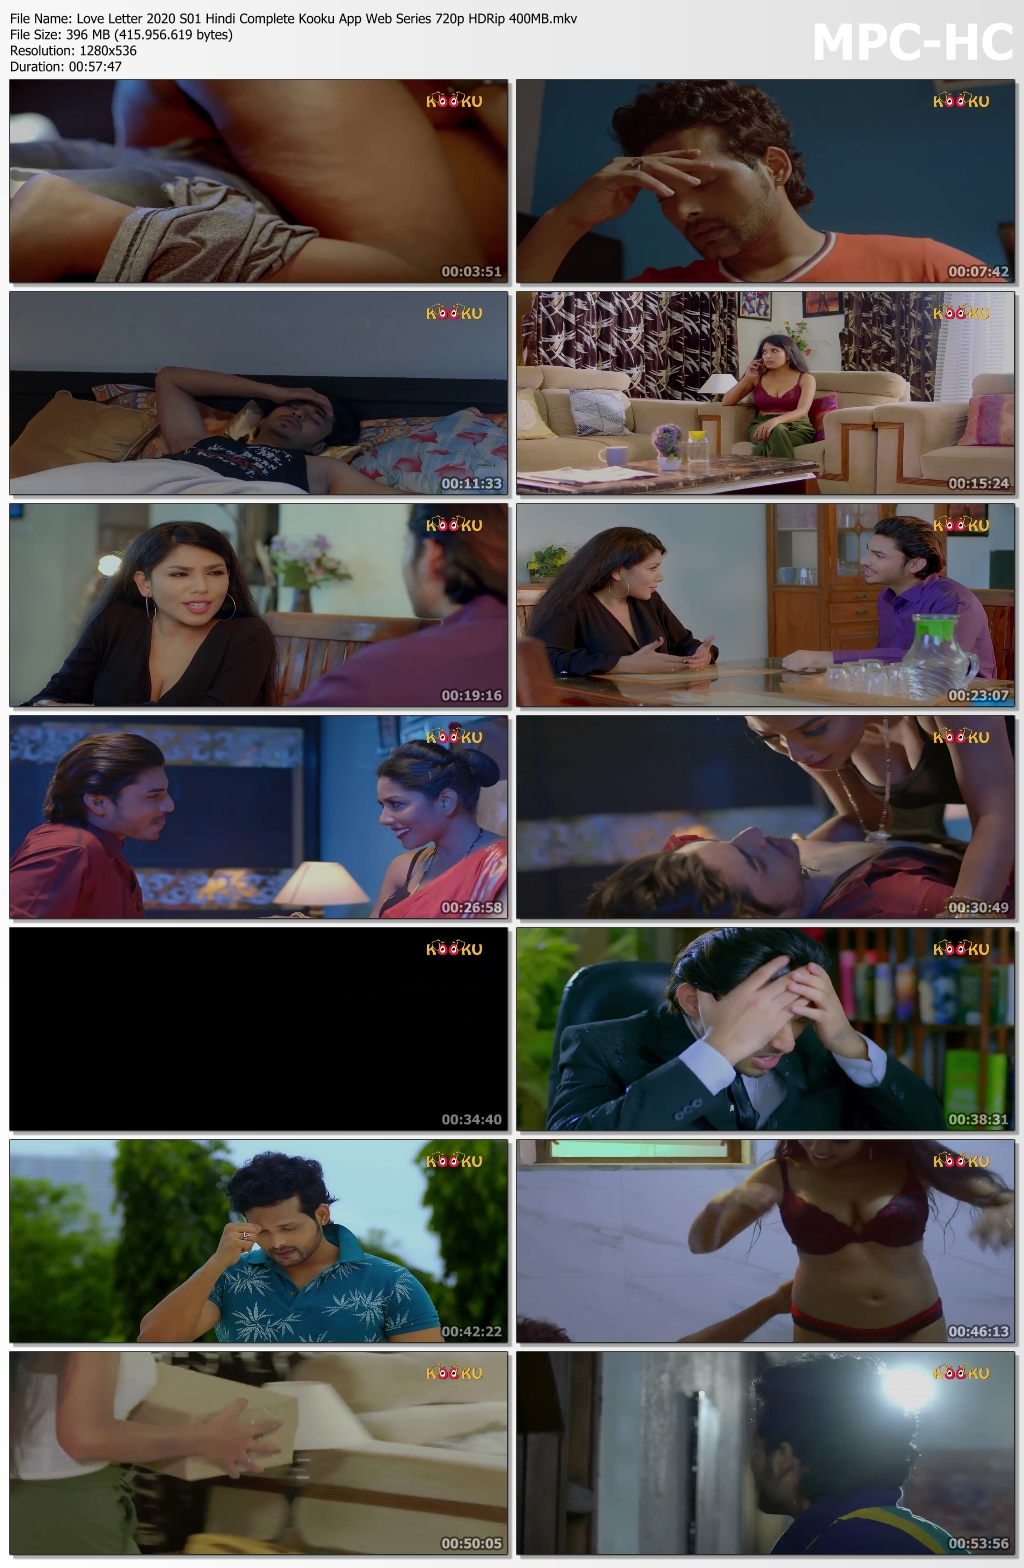 Love-Letter-2020-S01-Hindi-Complete-Kooku-App-Web-Series-720p-HDRip-400-MB-mkv-thumbs